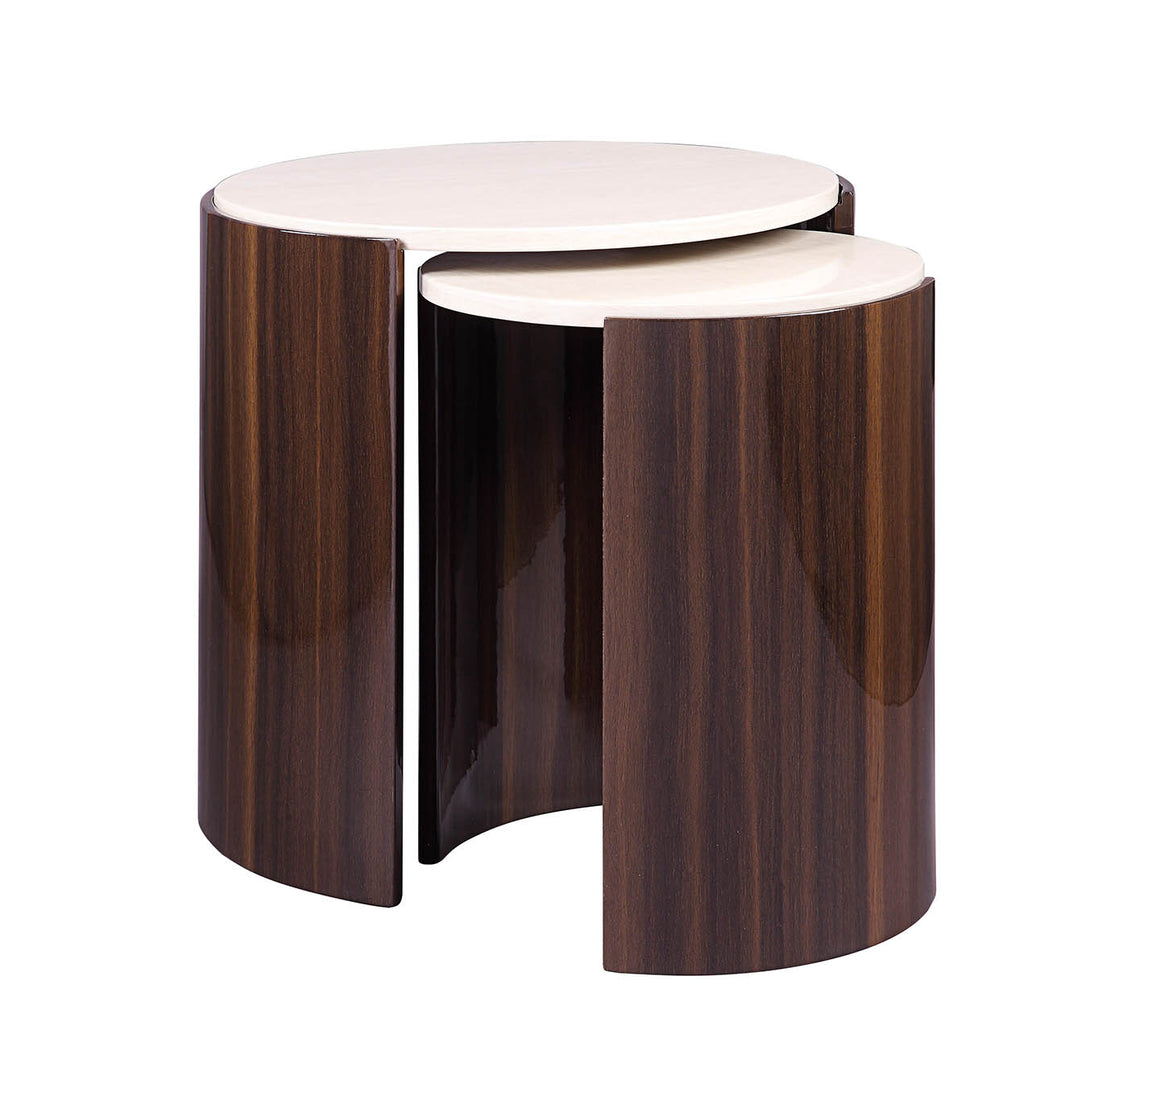 JF905 - Milan Nest of Tables